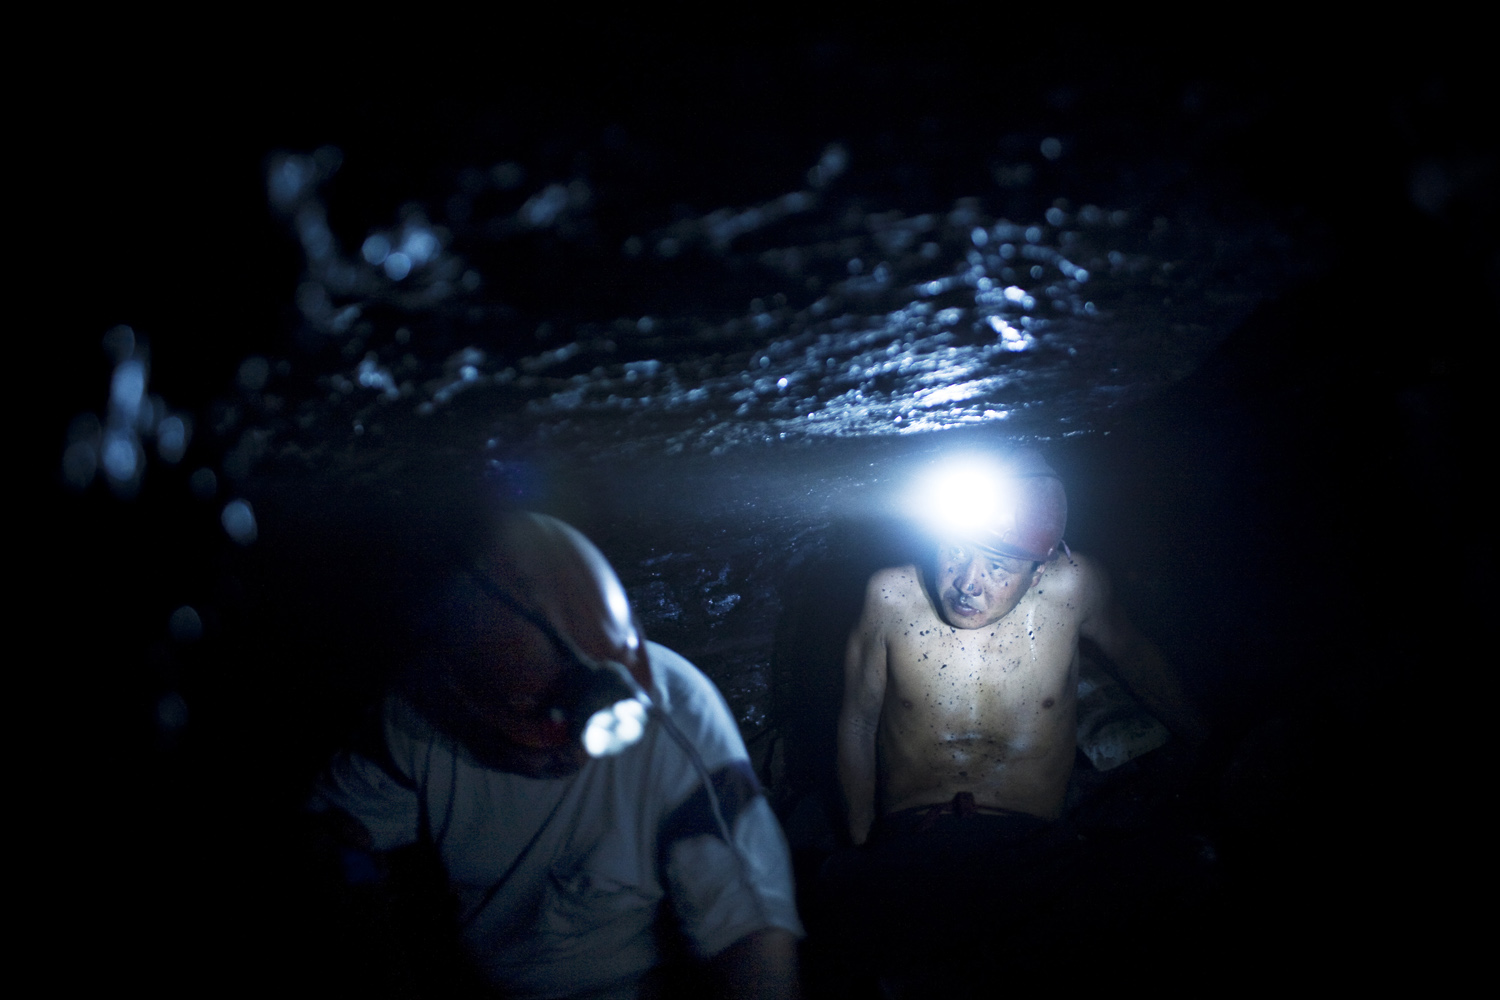 2009. Coal miners in Tash Kumyr. The town used to be a major industrial center, but now struggles to survive.